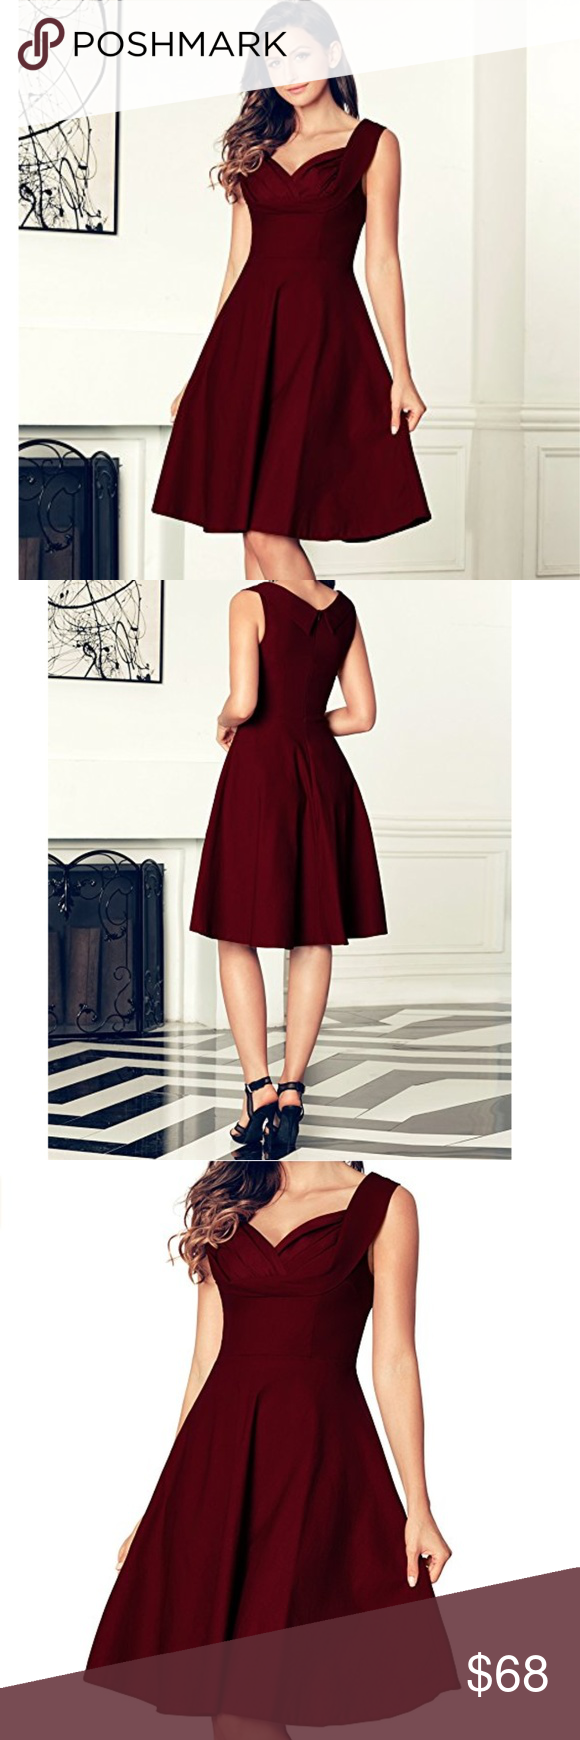 Ella Wine Red Fit And Flare Cocktail Dress Fit And Flare Cocktail Dress Dresses Fit And Flare [ 1740 x 580 Pixel ]